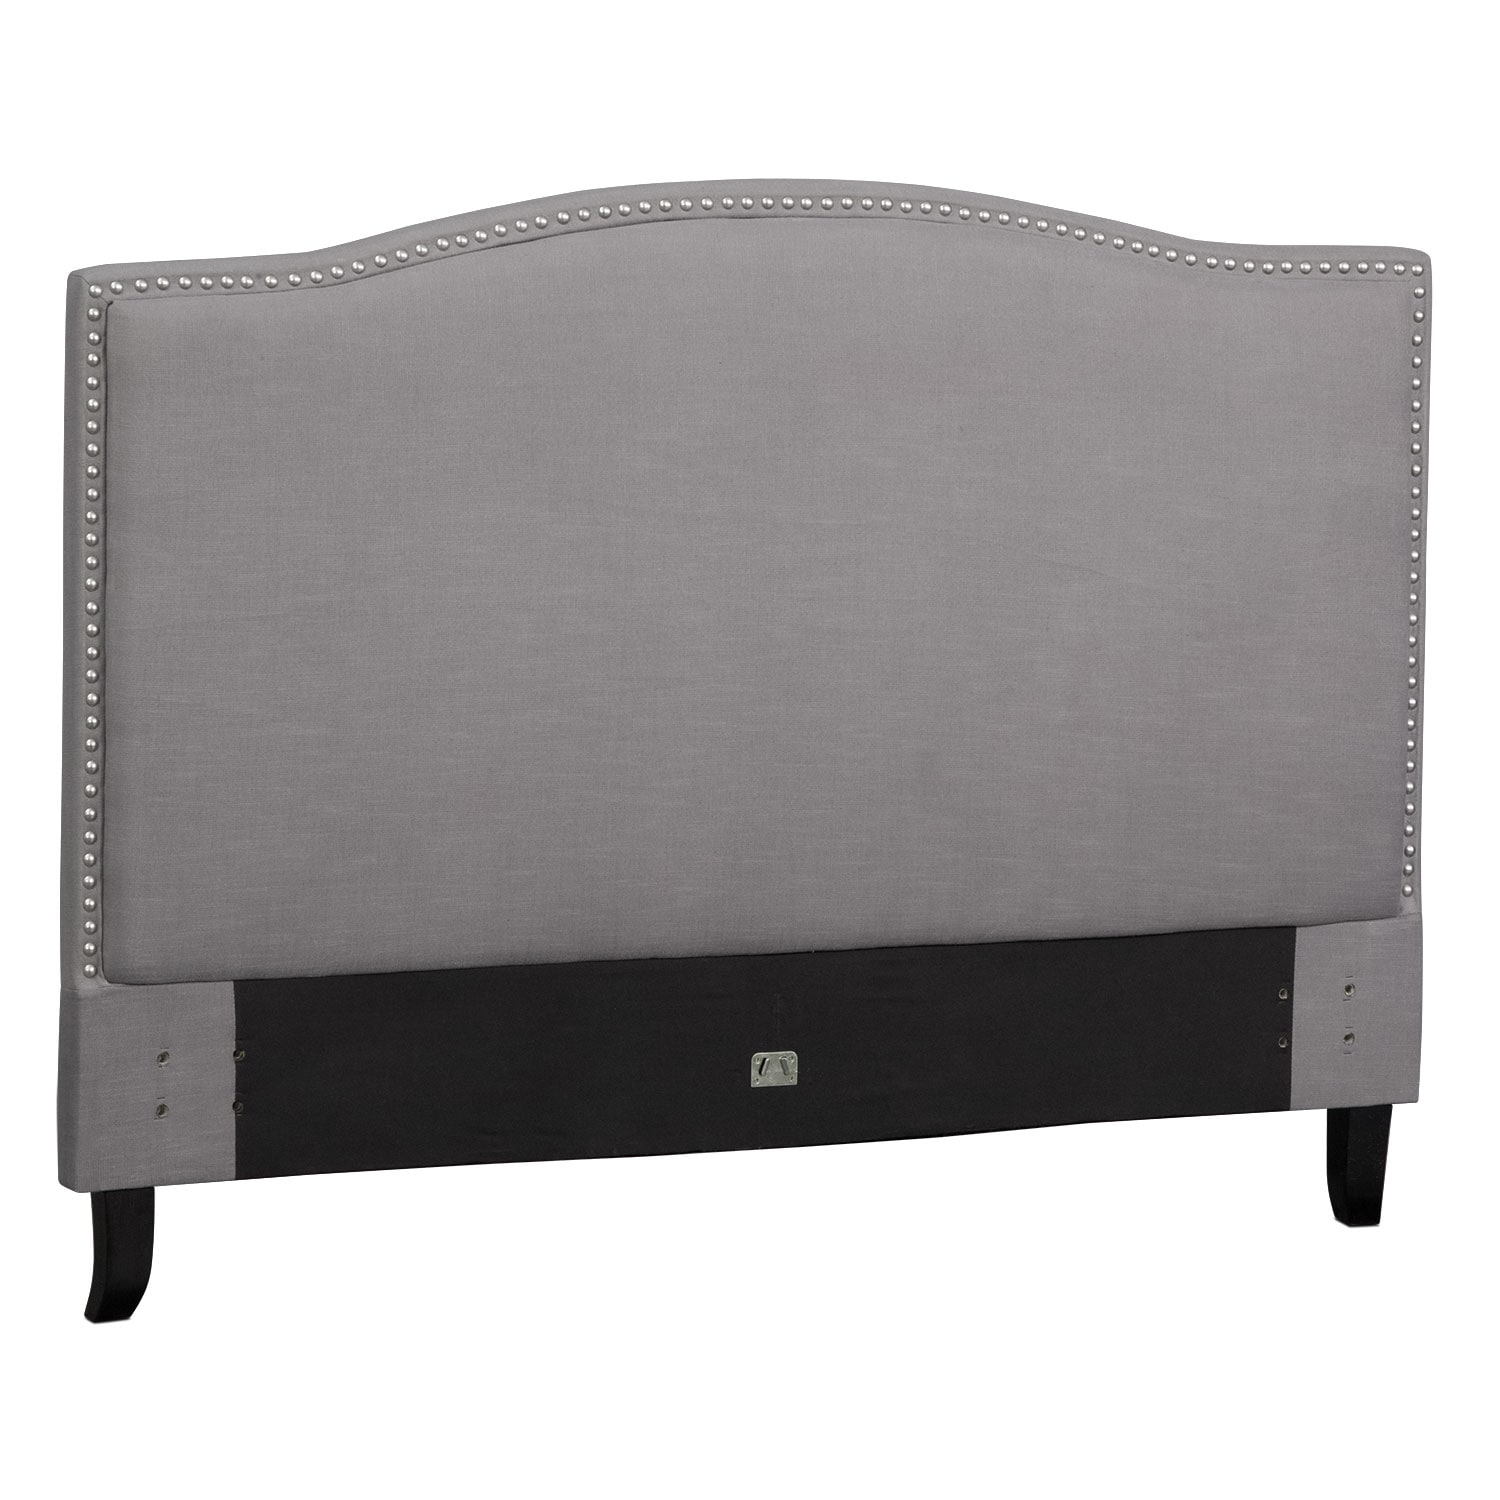 Bedroom Furniture - Aubrey King Upholstered Headboard - Gray